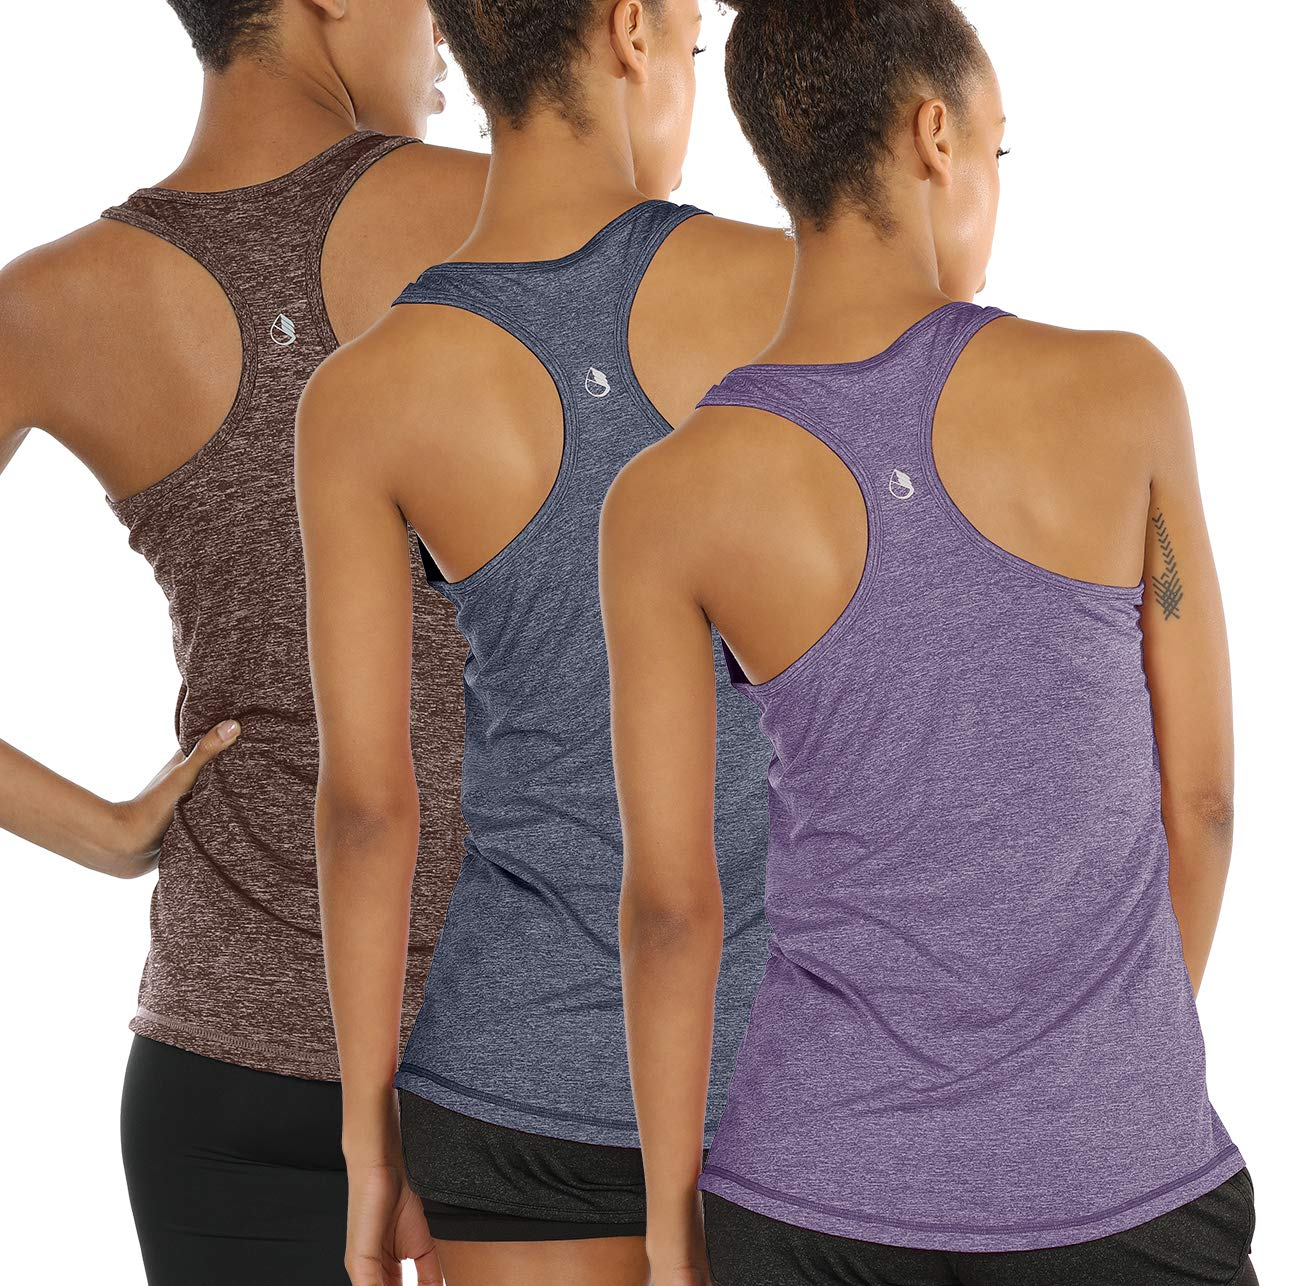 icyzone Workout Tank Tops for Women - Racerback Athletic Yoga Tops, Running Exercise Gym Shirts(Pack of 3) (XS, Henna/Twilight Purple/Navy) by icyzone